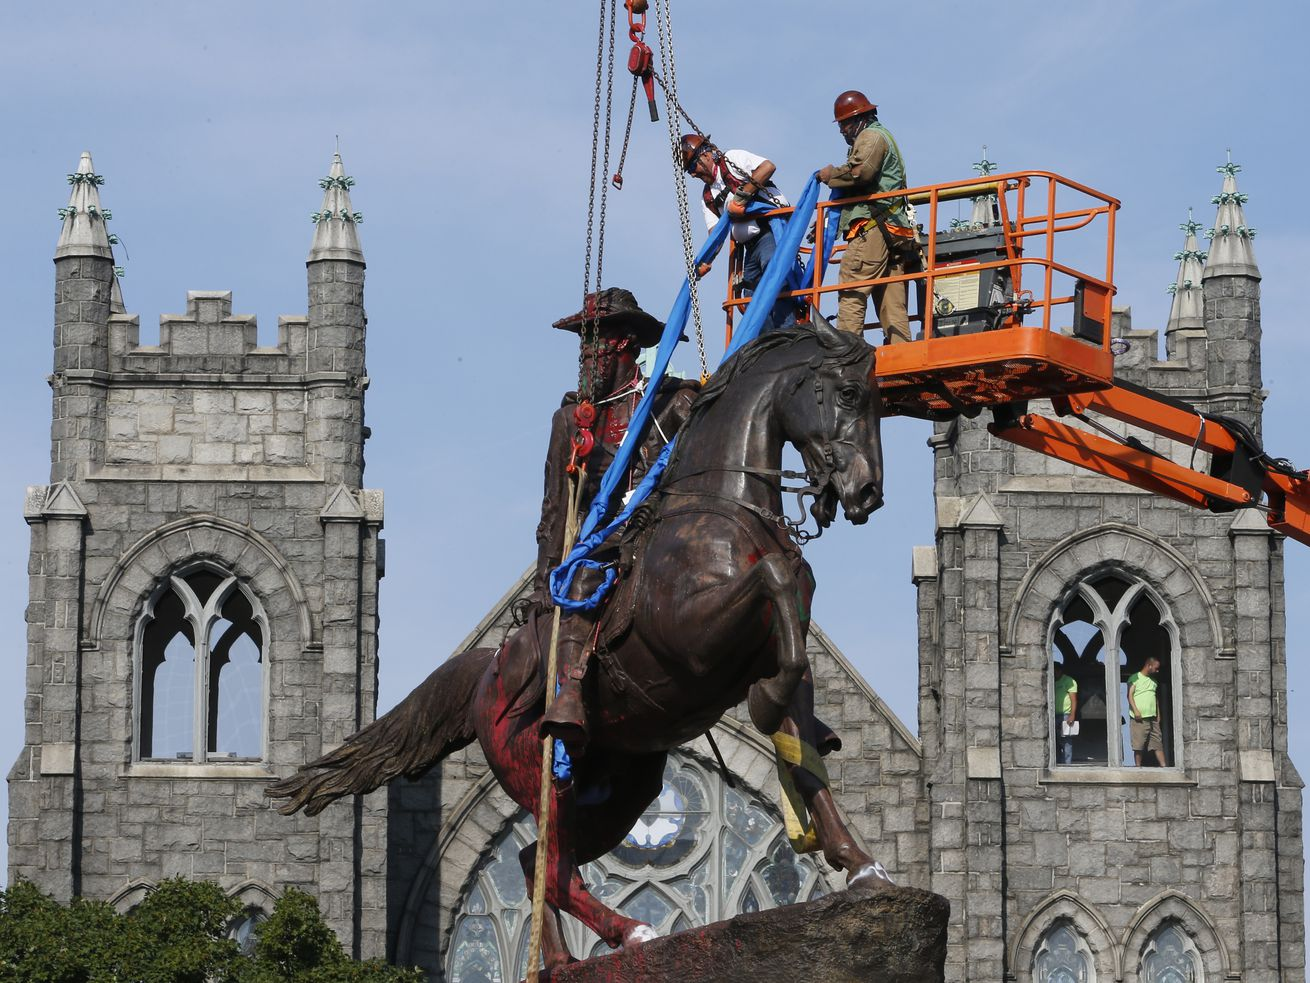 In this July 7, 2020, file photo, crews attach straps to the statue Confederate General J.E.B. Stuart on Monument Avenue in Richmond, Va. At least 160 Confederate symbols were taken down or moved from public spaces in 2020.